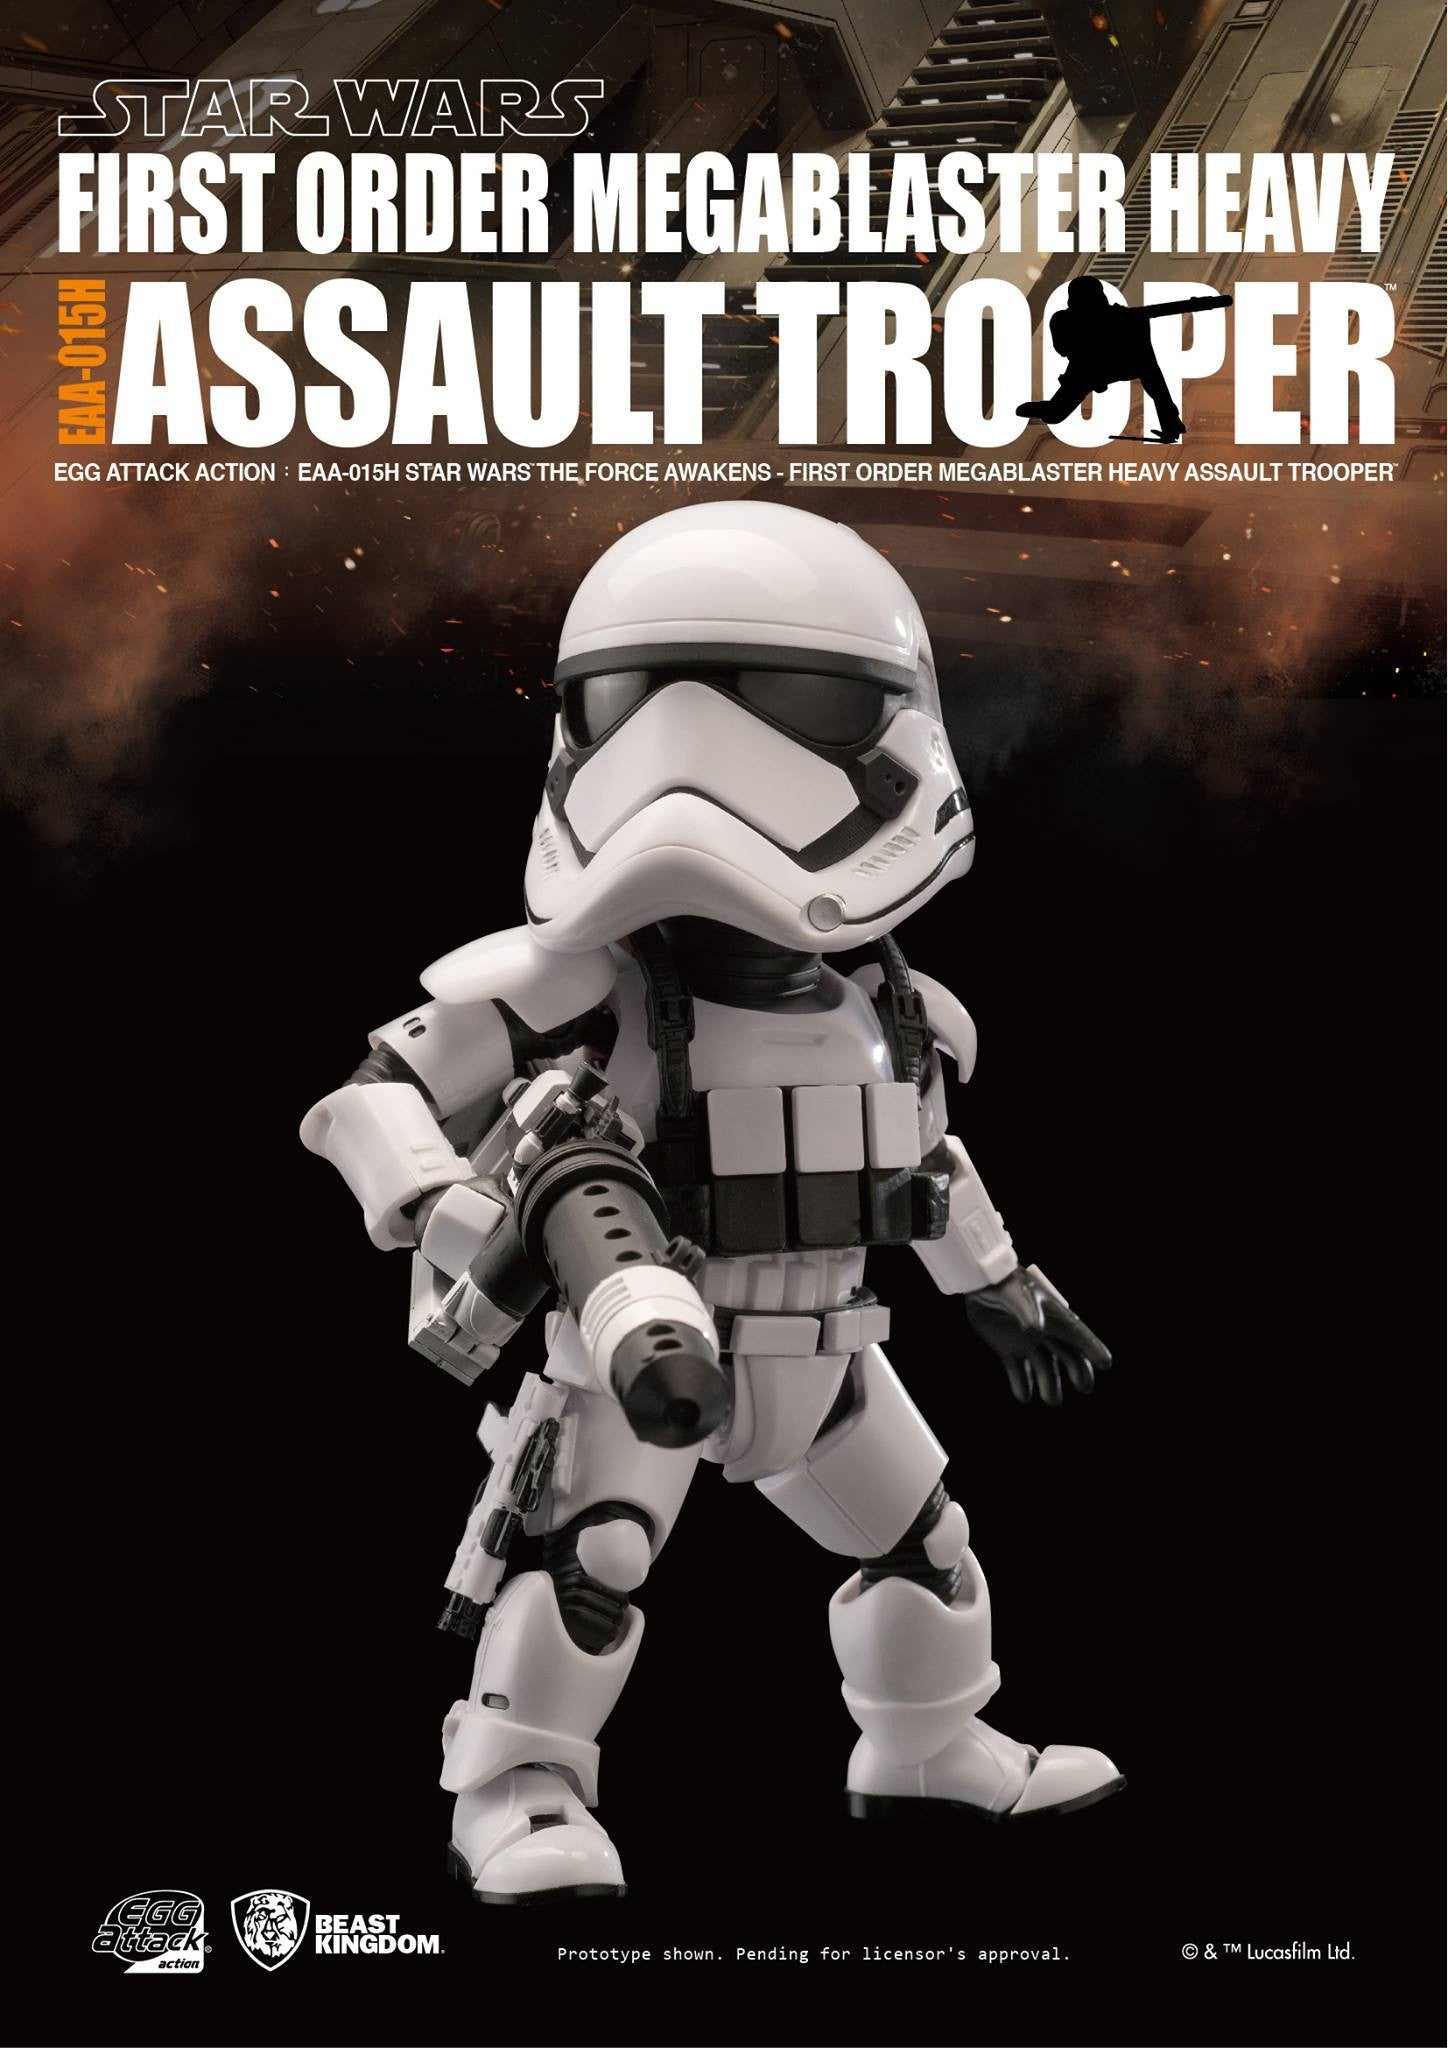 Egg Attack Action - EAA-015H - Star Wars: The Force Awakens - Megablaster Heavy Assault Trooper - Marvelous Toys - 3